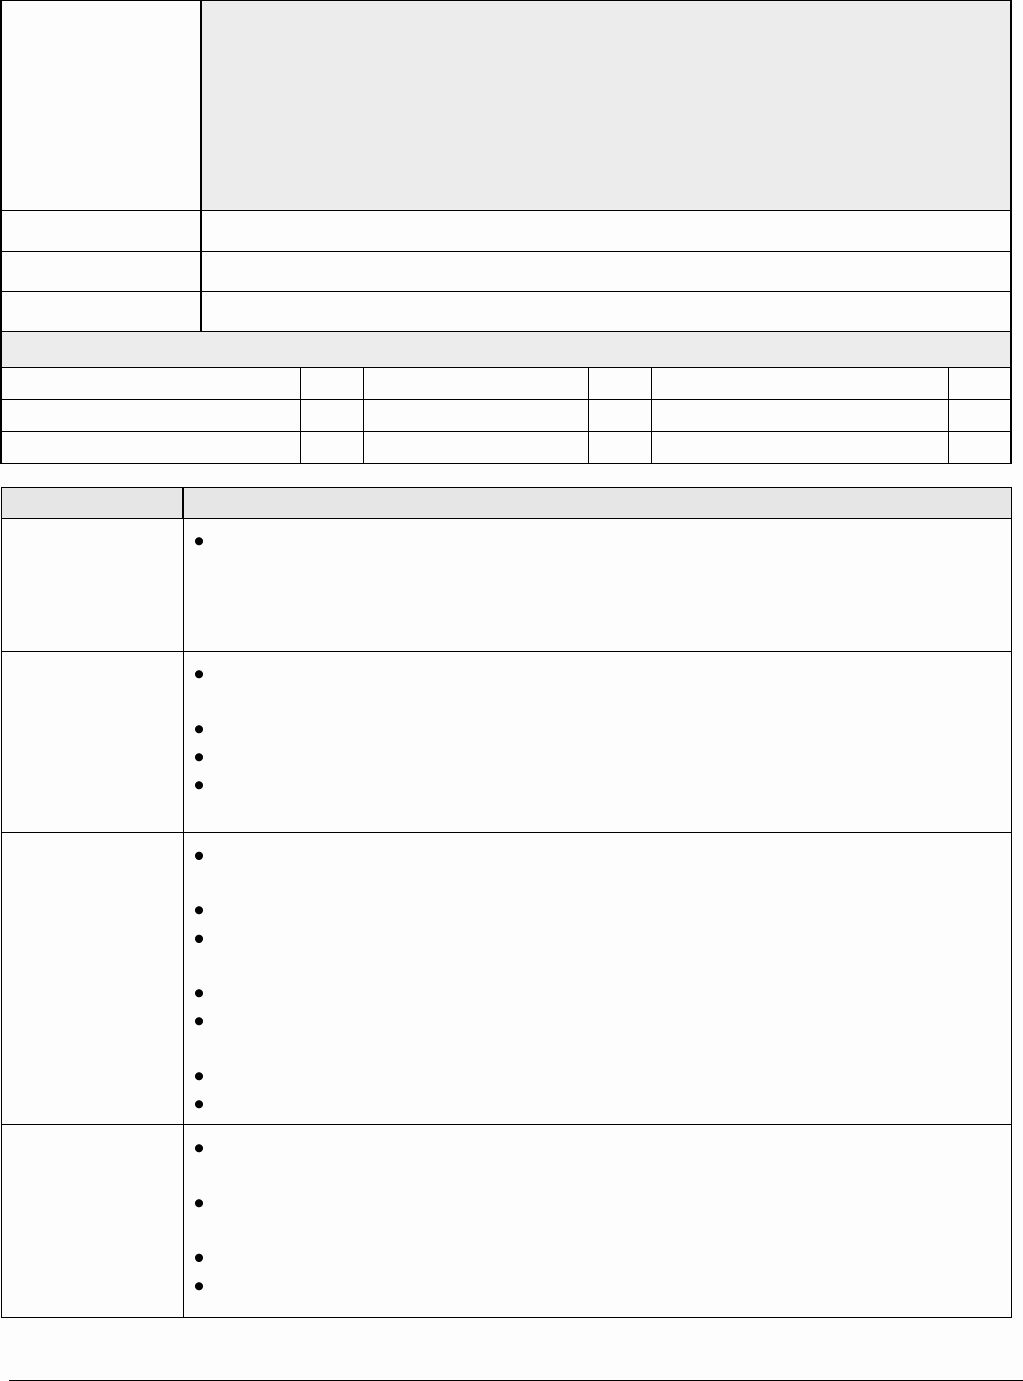 Training Agenda Template In Word Fresh Training Agenda Template In Word and Pdf formats